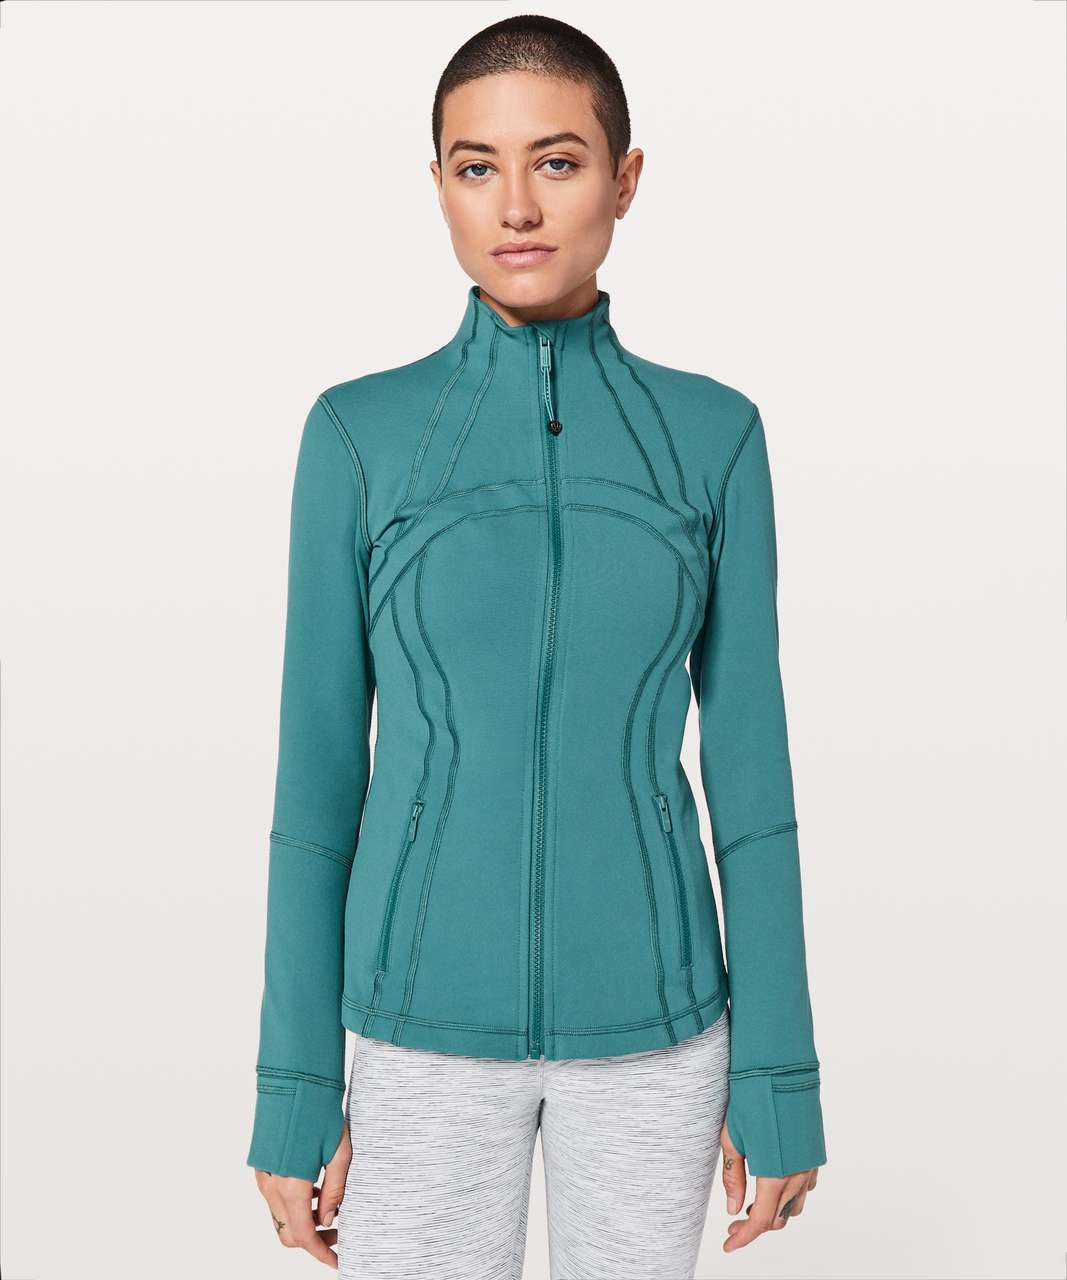 8d0435565c7cd Lululemon Define Jacket - Deep Cove - lulu fanatics